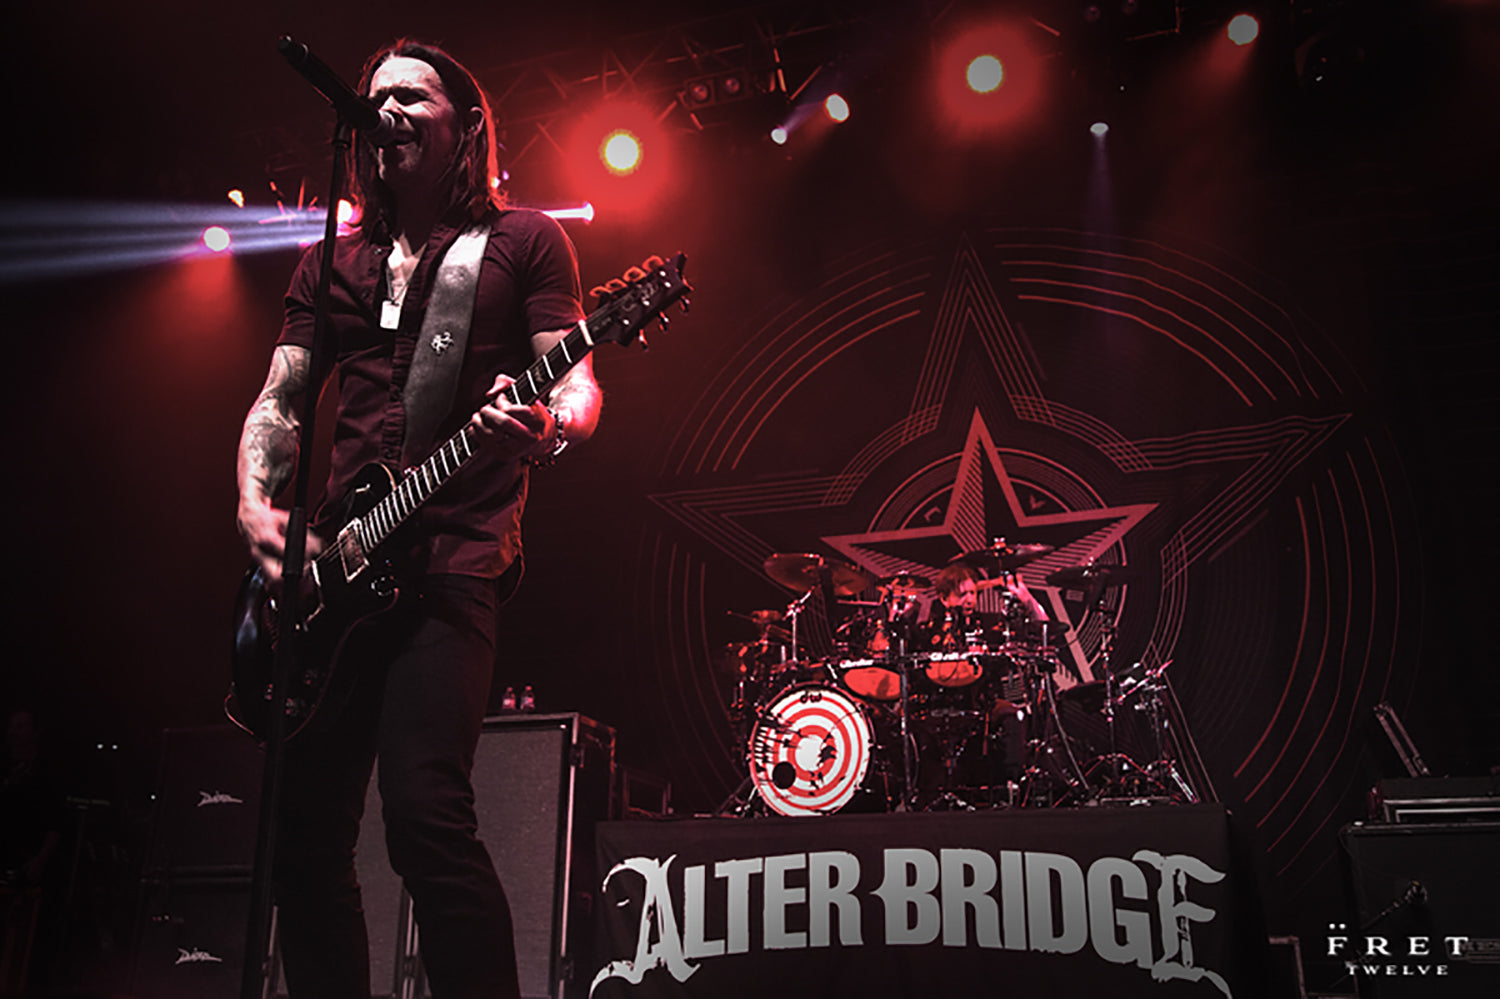 Alter Bridge Rosemont - FRET12 - 1